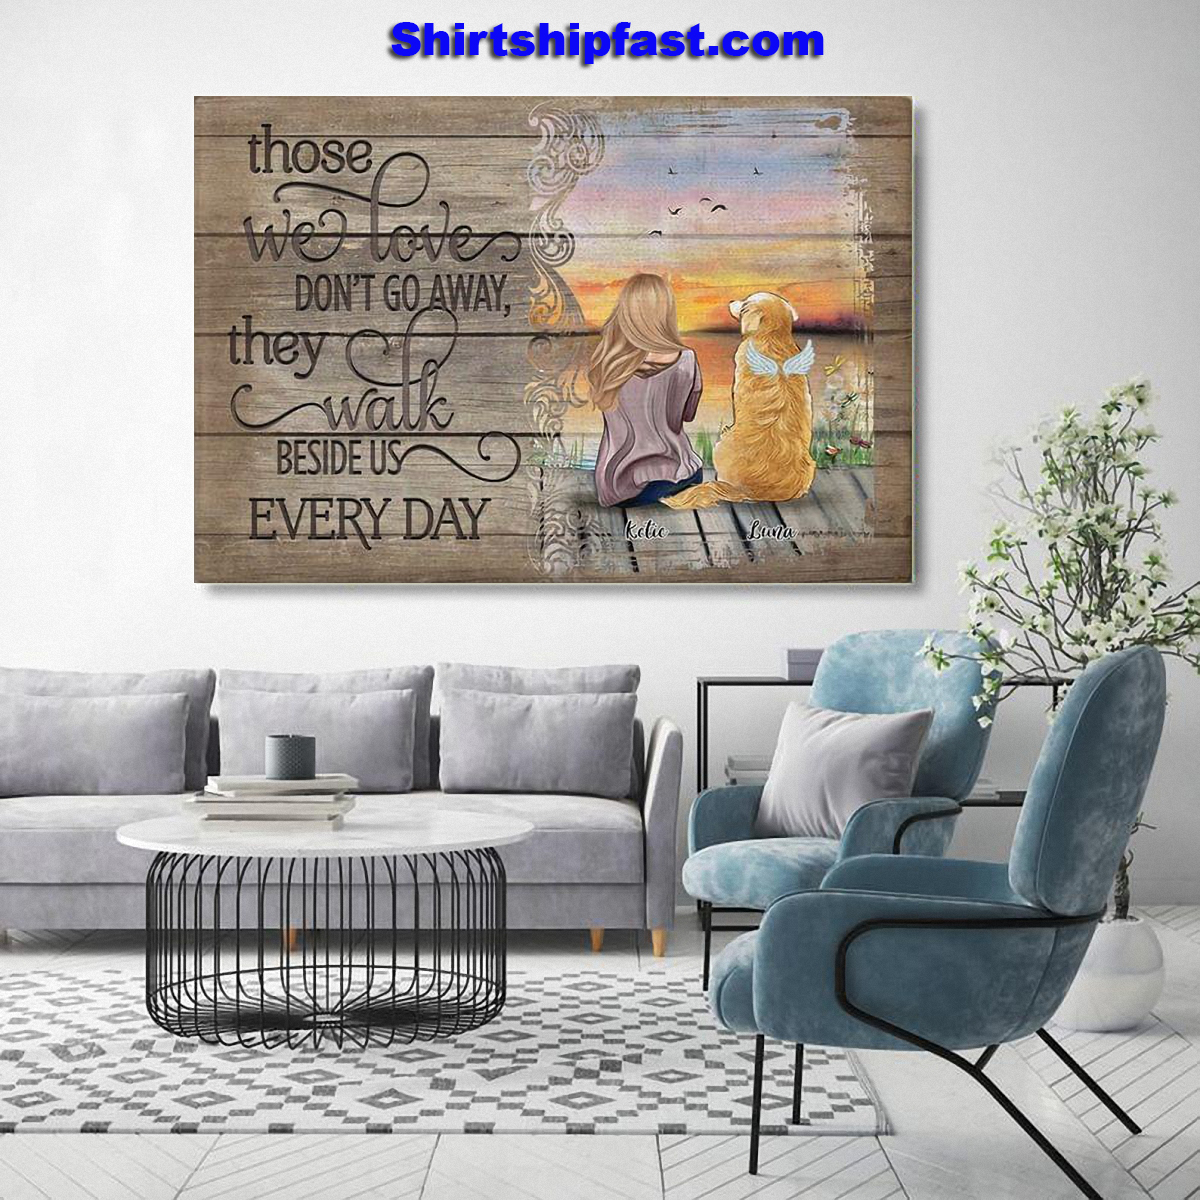 Those we love don't go away they walk beside us every day personalized poster - Picture 1